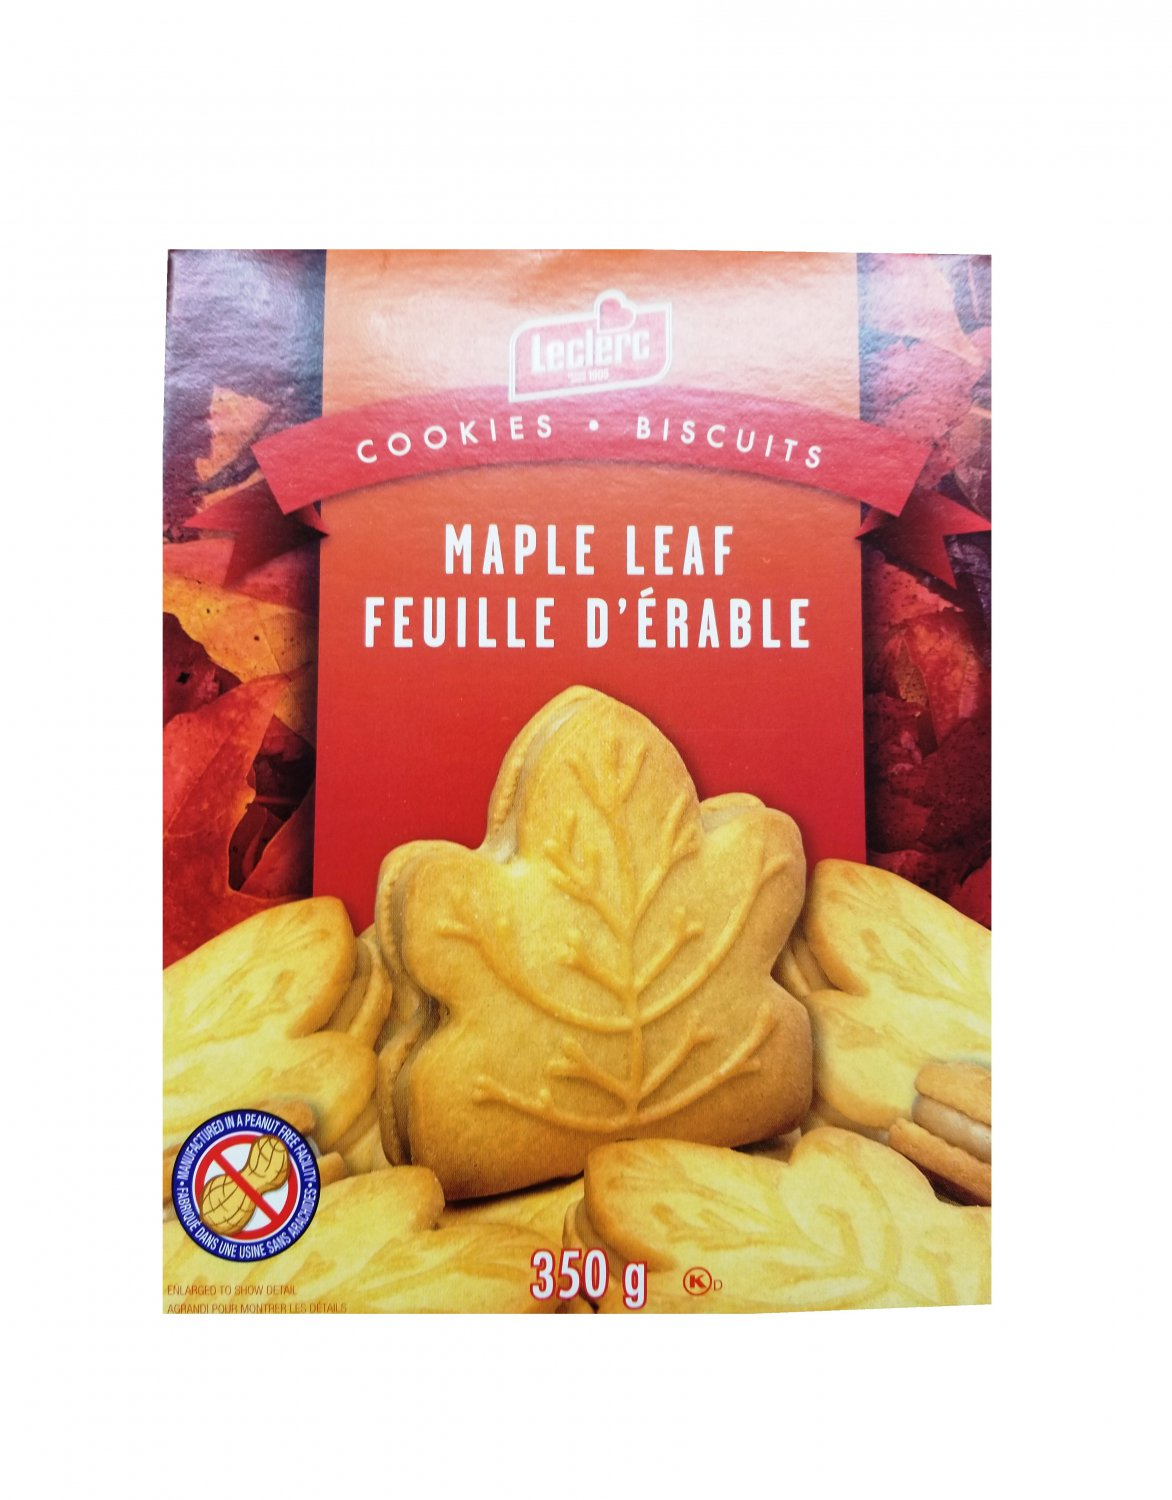 Maple Cream Cookies from Canada with 100% Pure Maple Syrup - Leclerc